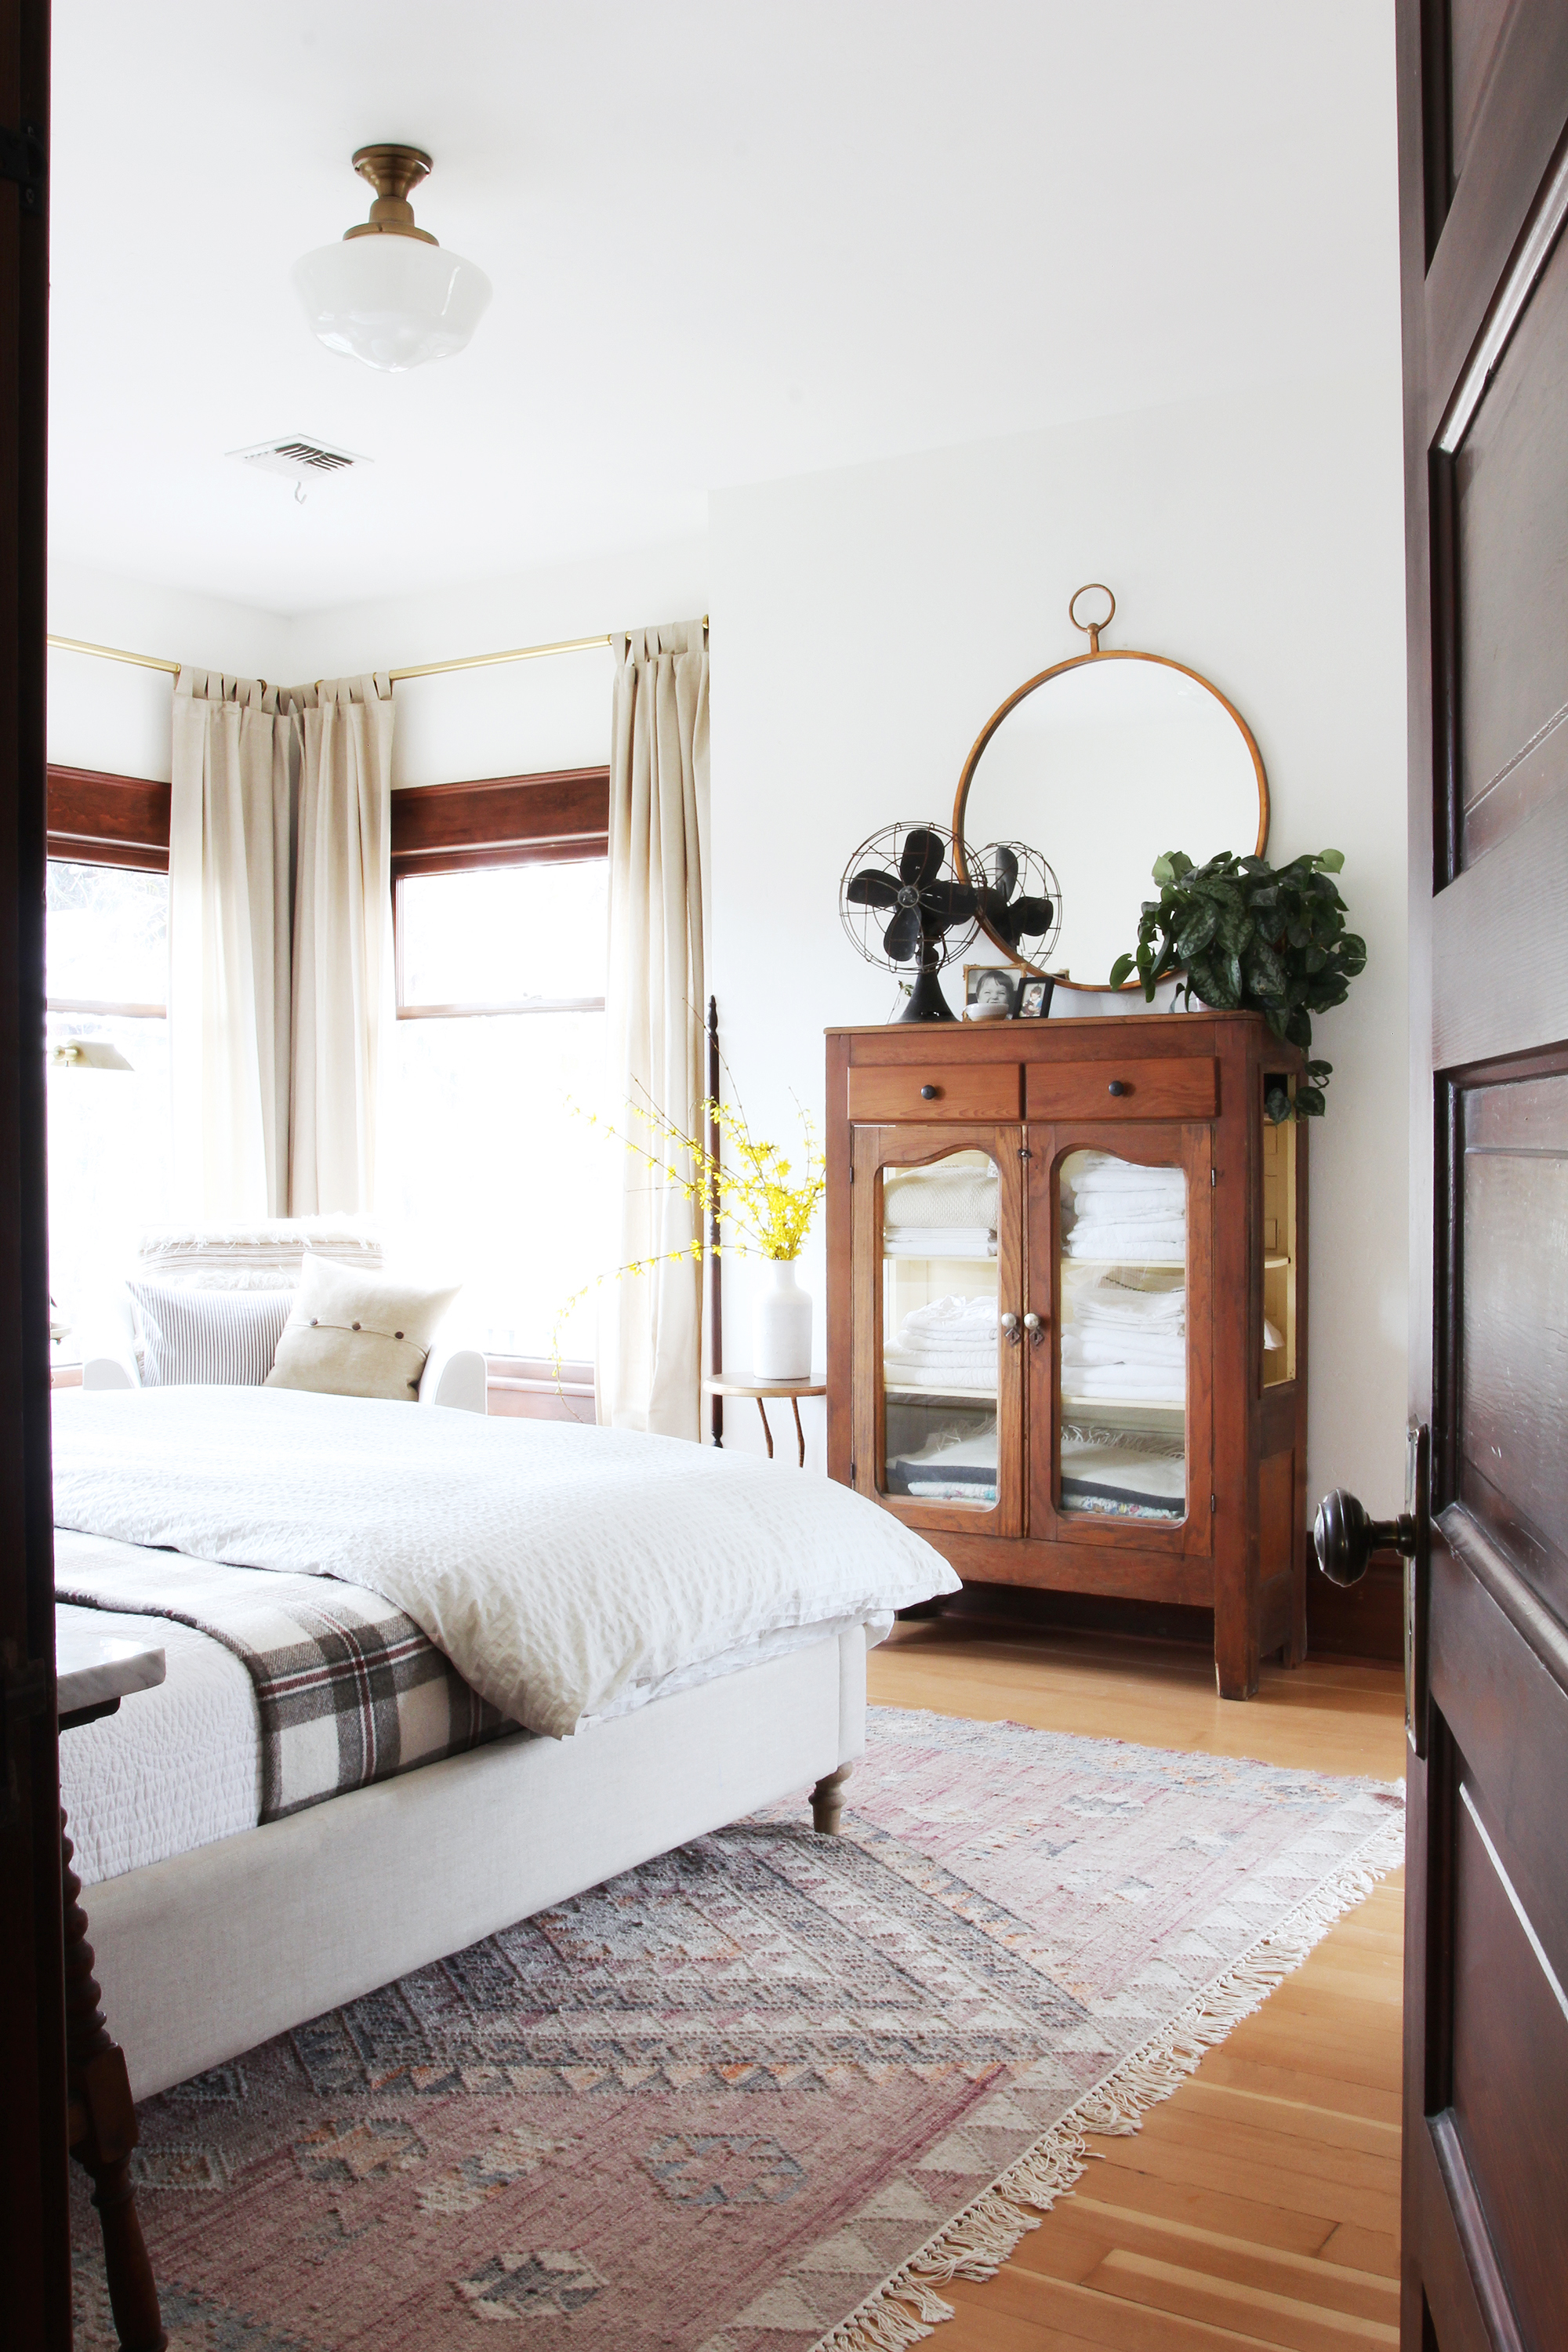 The Grit and Polish - Farmhouse Master Bedroom from door.jpg